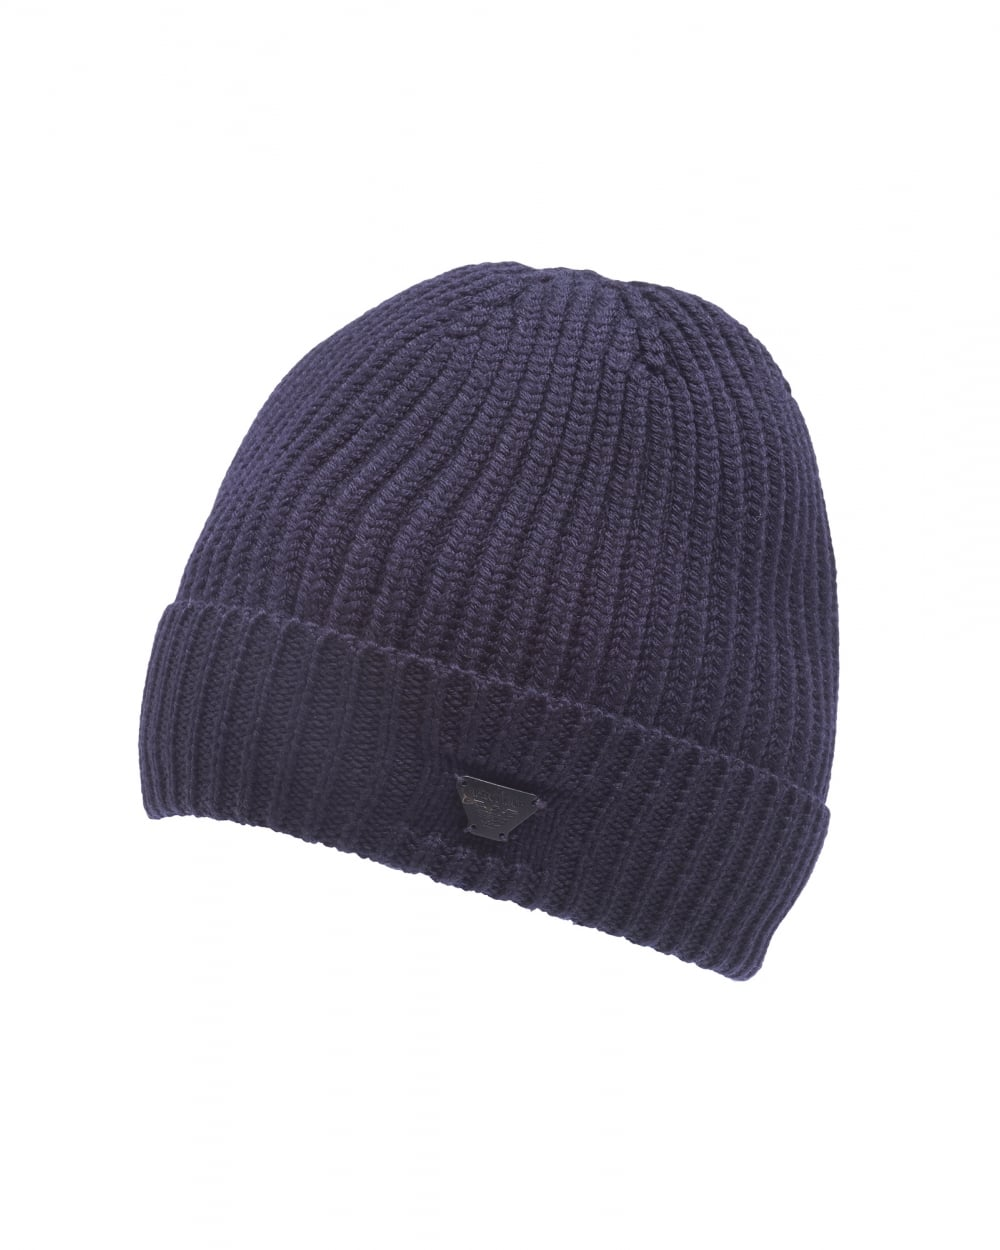 177b679403e Armani Jeans Mens Navy Blue Chunky Wool Badge Beanie Hat